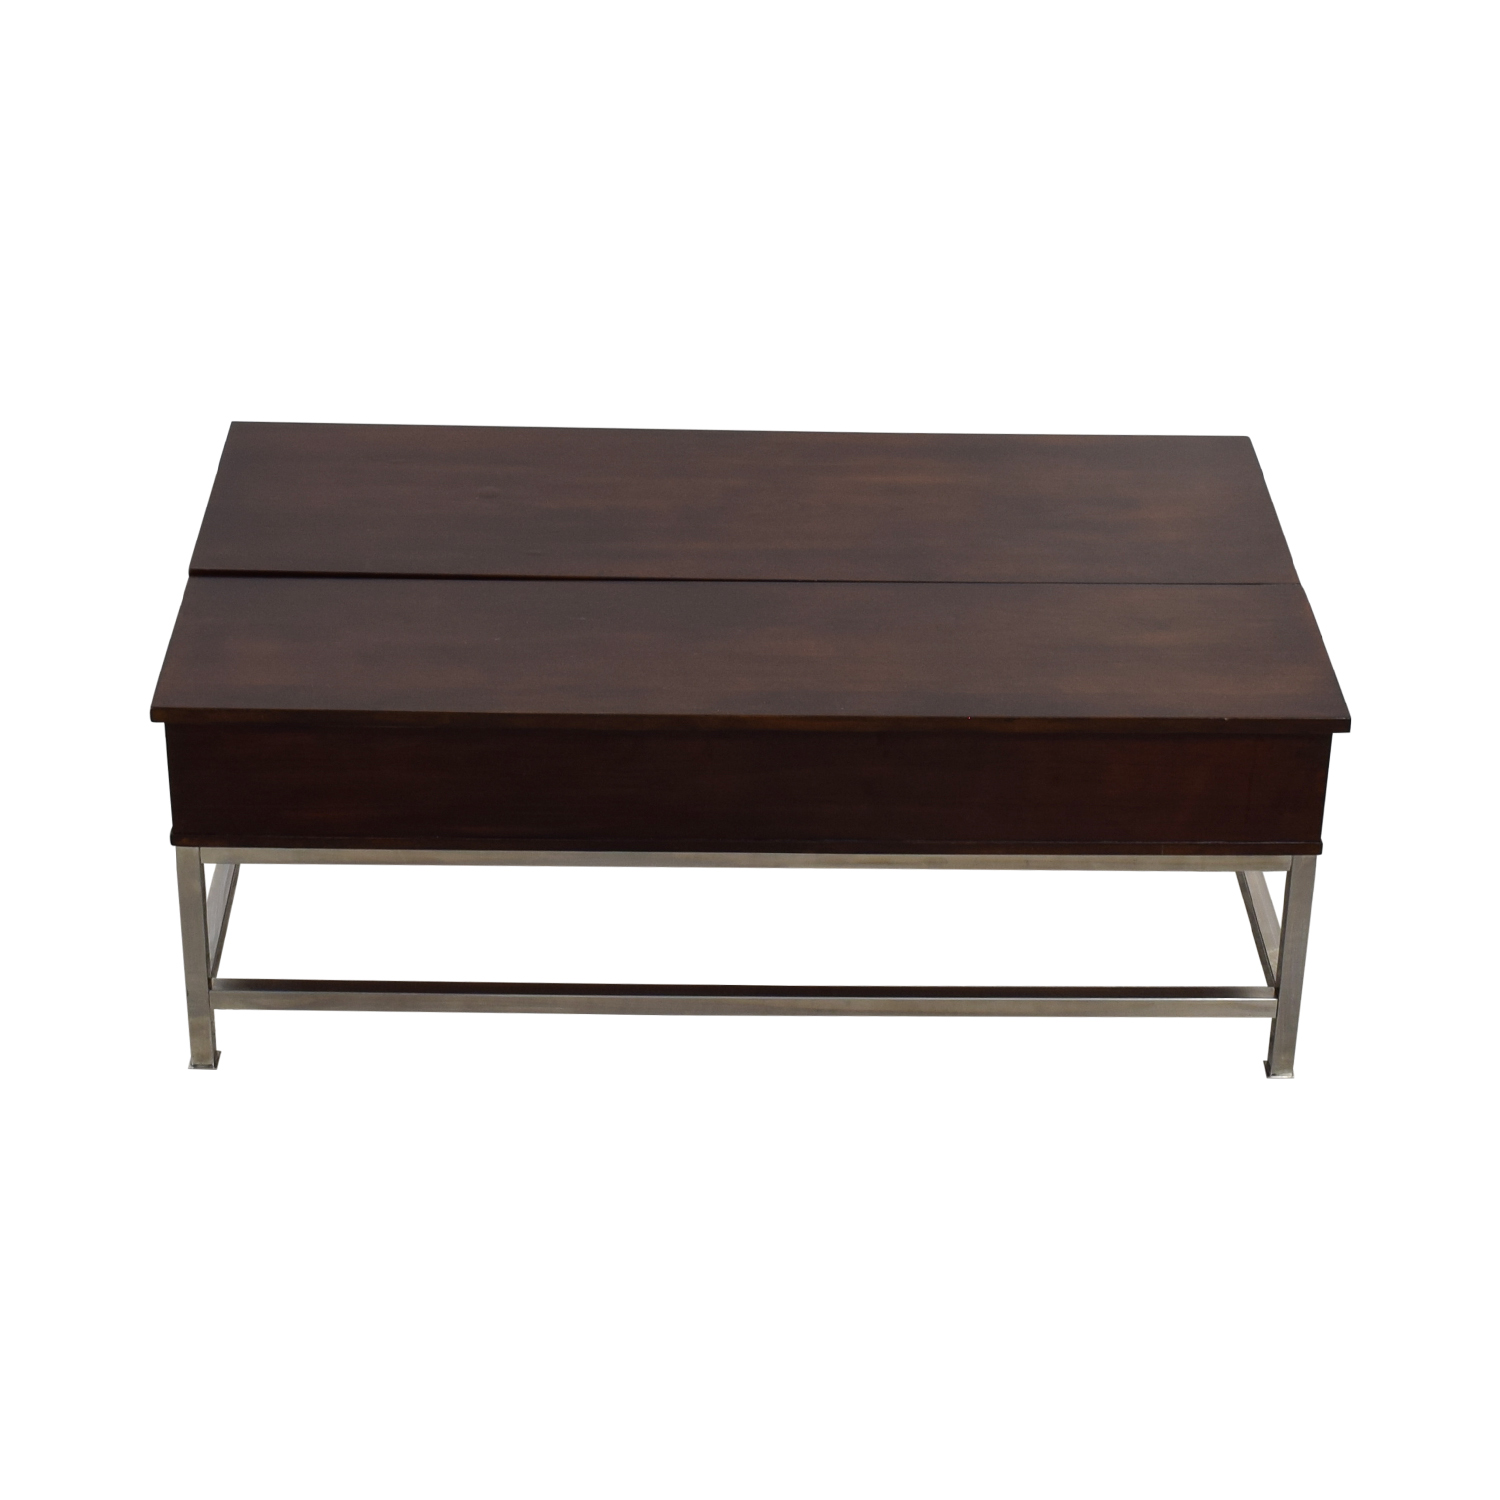 Raymour & Flanigan Raymour & Flanigan Lift Top Coffee Table price